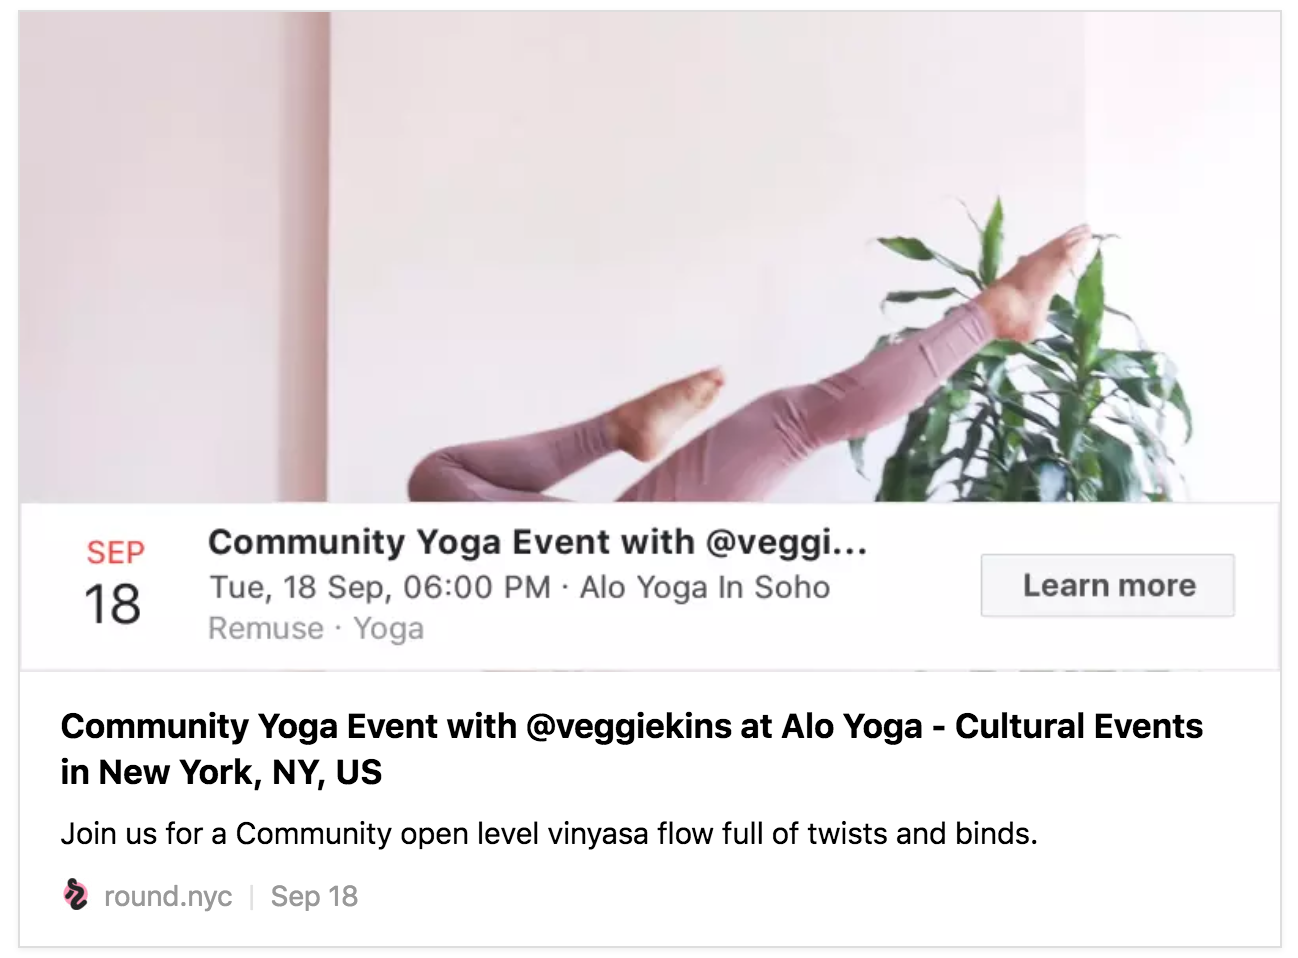 Remy's upcoming event at Alo Yoga in SoHo